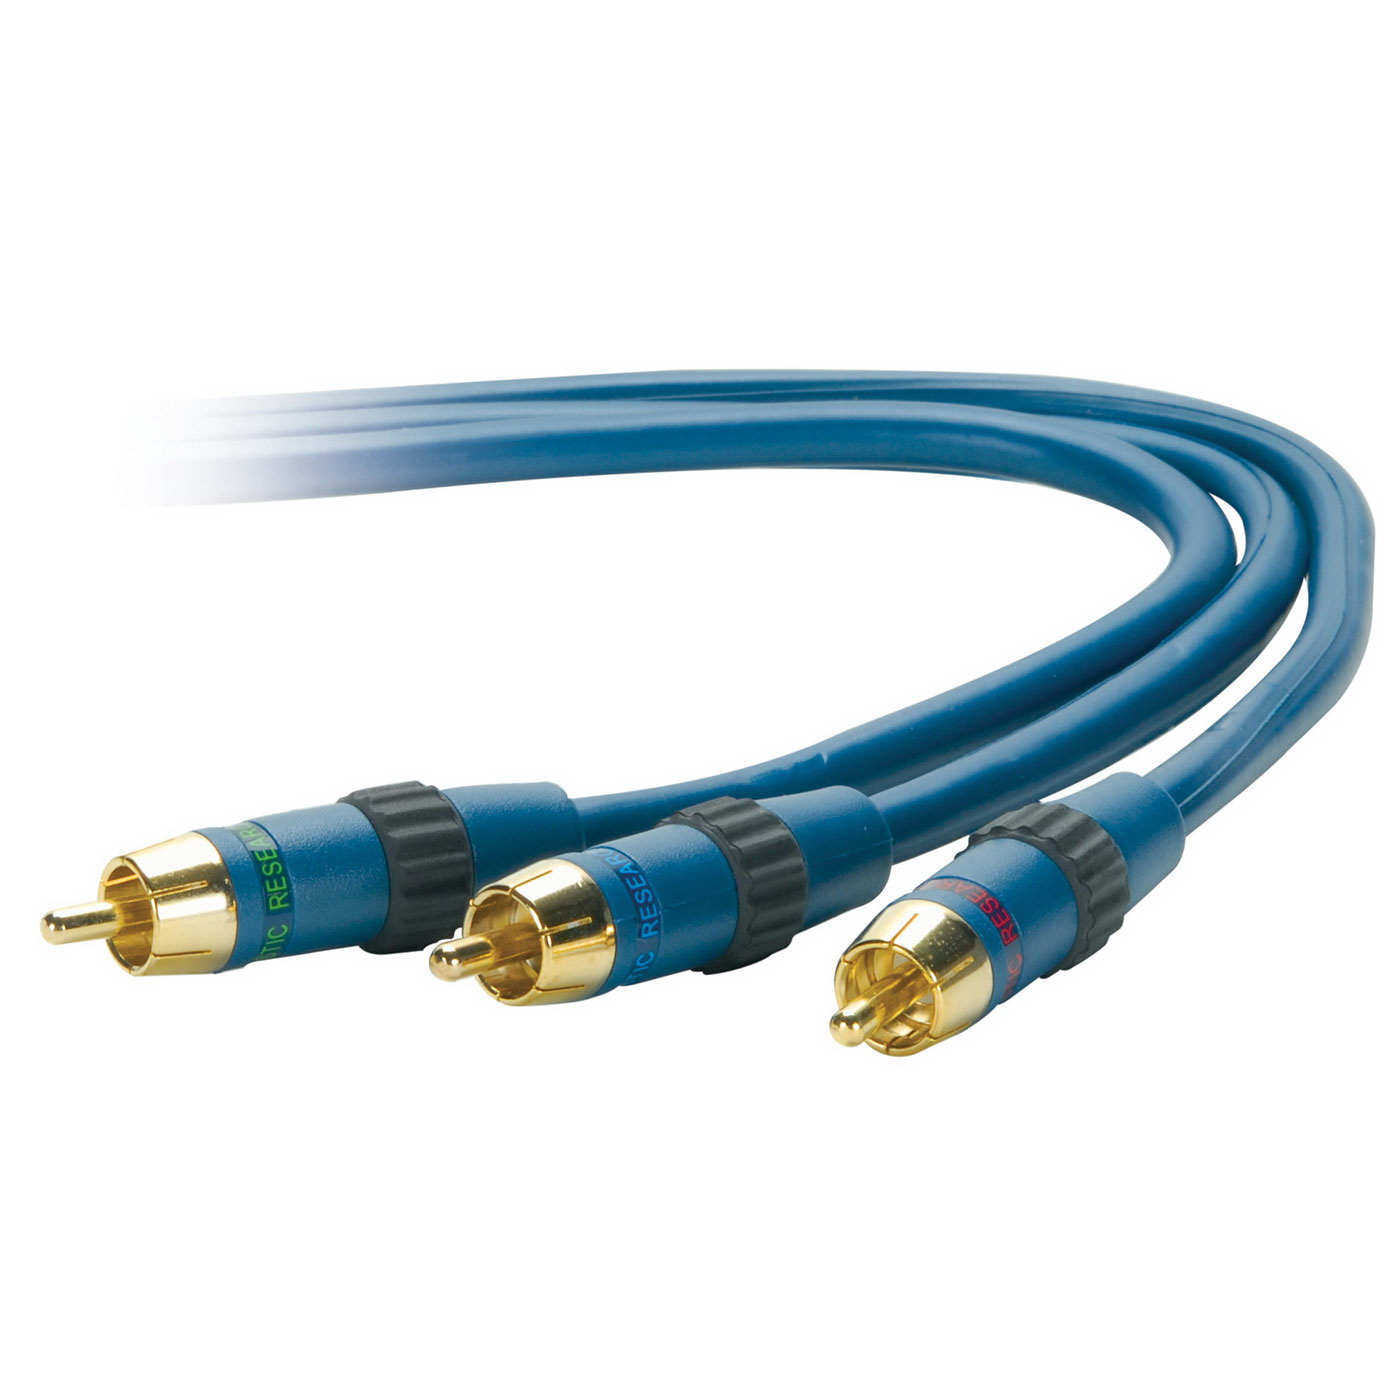 AR AP092N Component Video 3 RCA to 3 RCA RGB Cable 12 ft Supports 720p and 1080p HD Signal